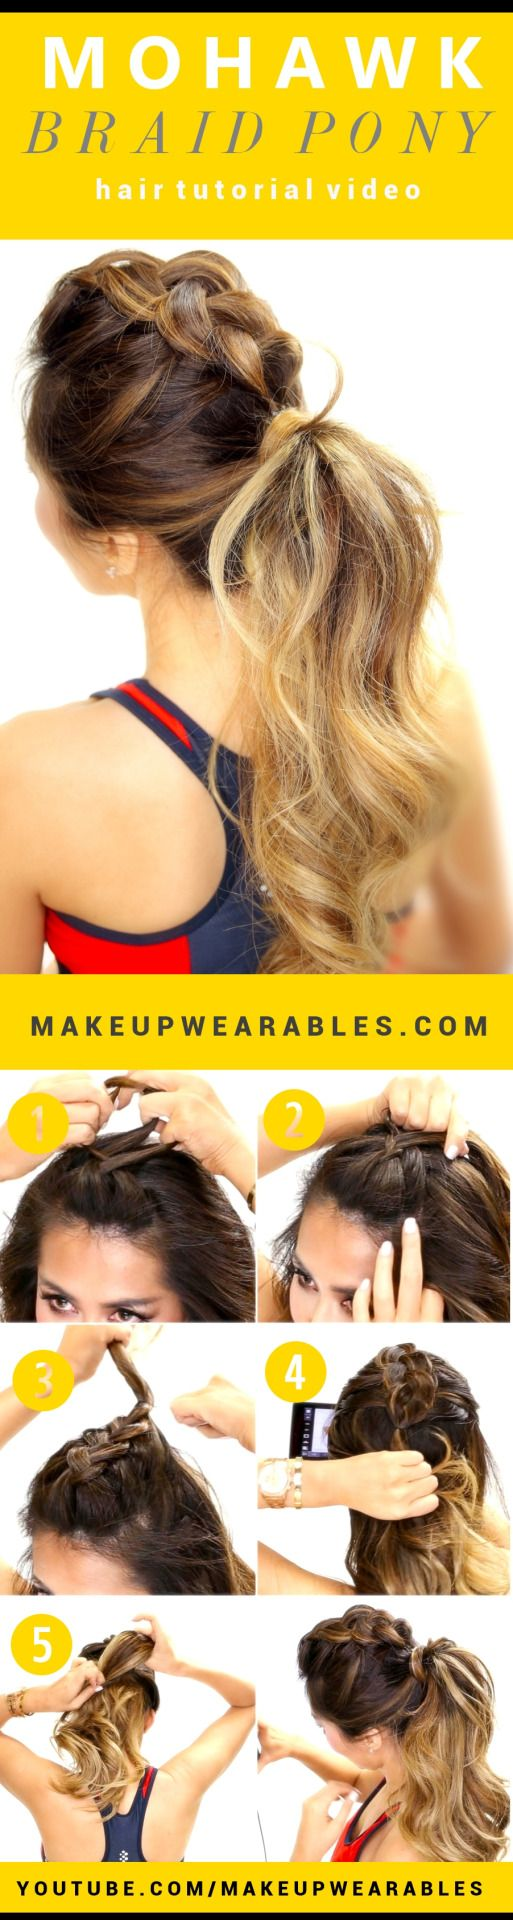 makeupwearableshairstyles:  Mohawk Braid Ponytail Tutorial. How to create 3 Braided Hairstyles for School, Workouts, Sports, and Everyday for long Medium Hair | Hair Tutorial Video